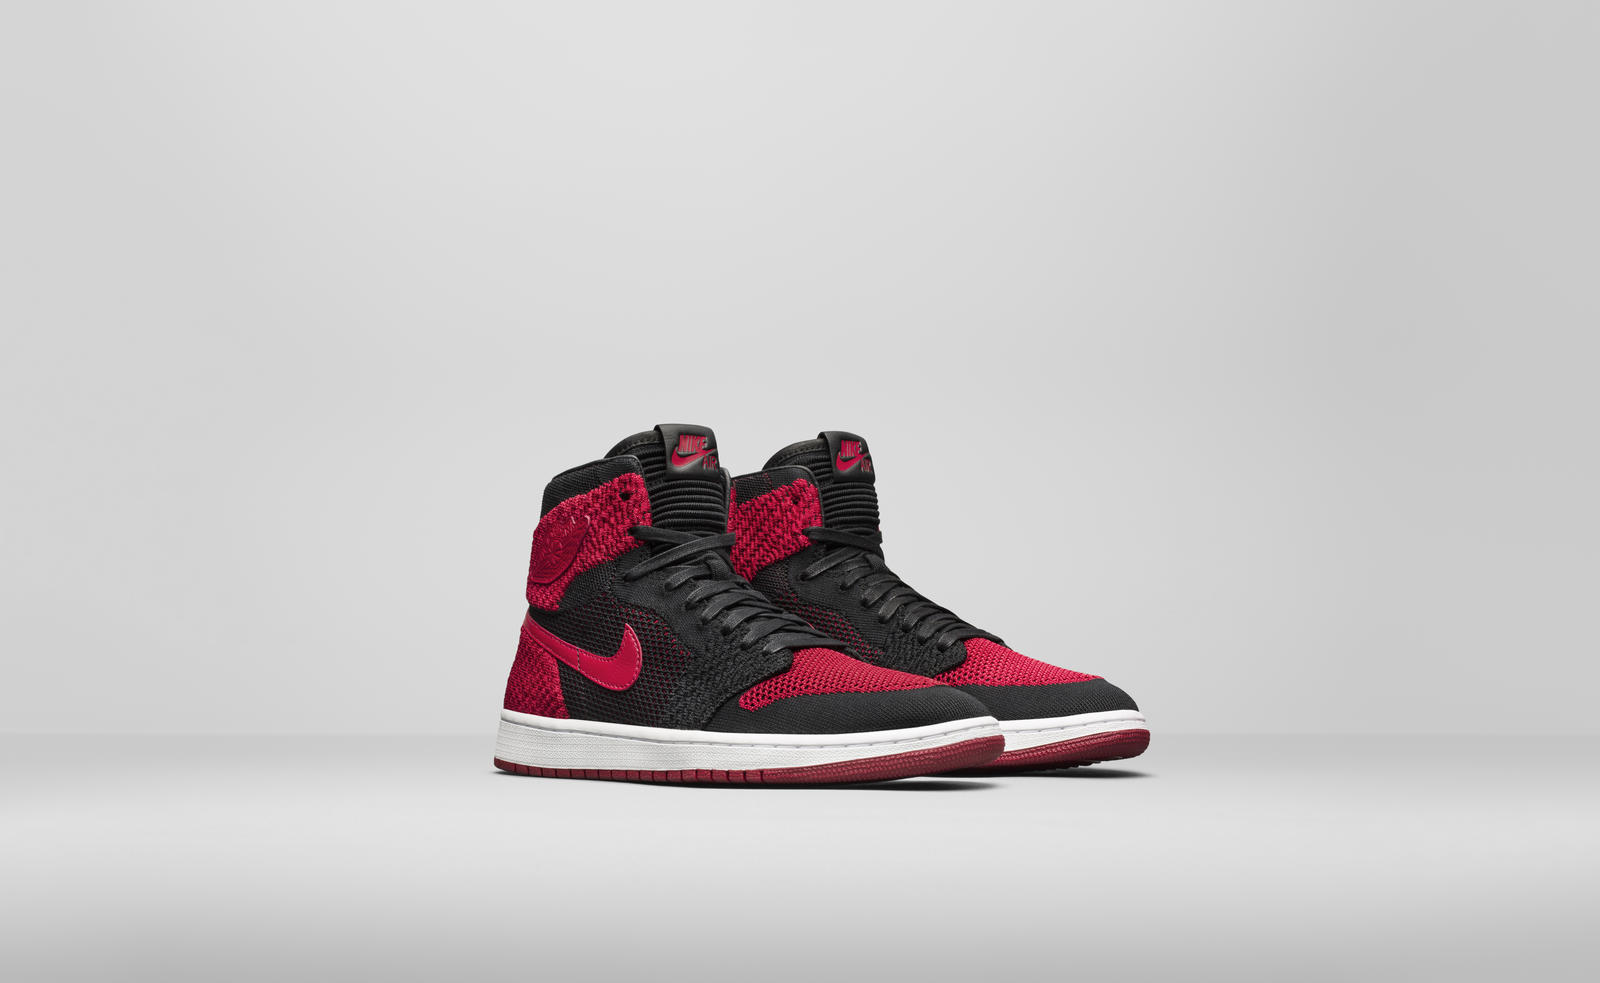 Introducing the Air Jordan 1 Retro Hi Flyknit   Nike News When the Air Jordan 1 was introduced in 1985 it utilized the era s best  materials and technologies  While basketball footwear has continued to  evolve